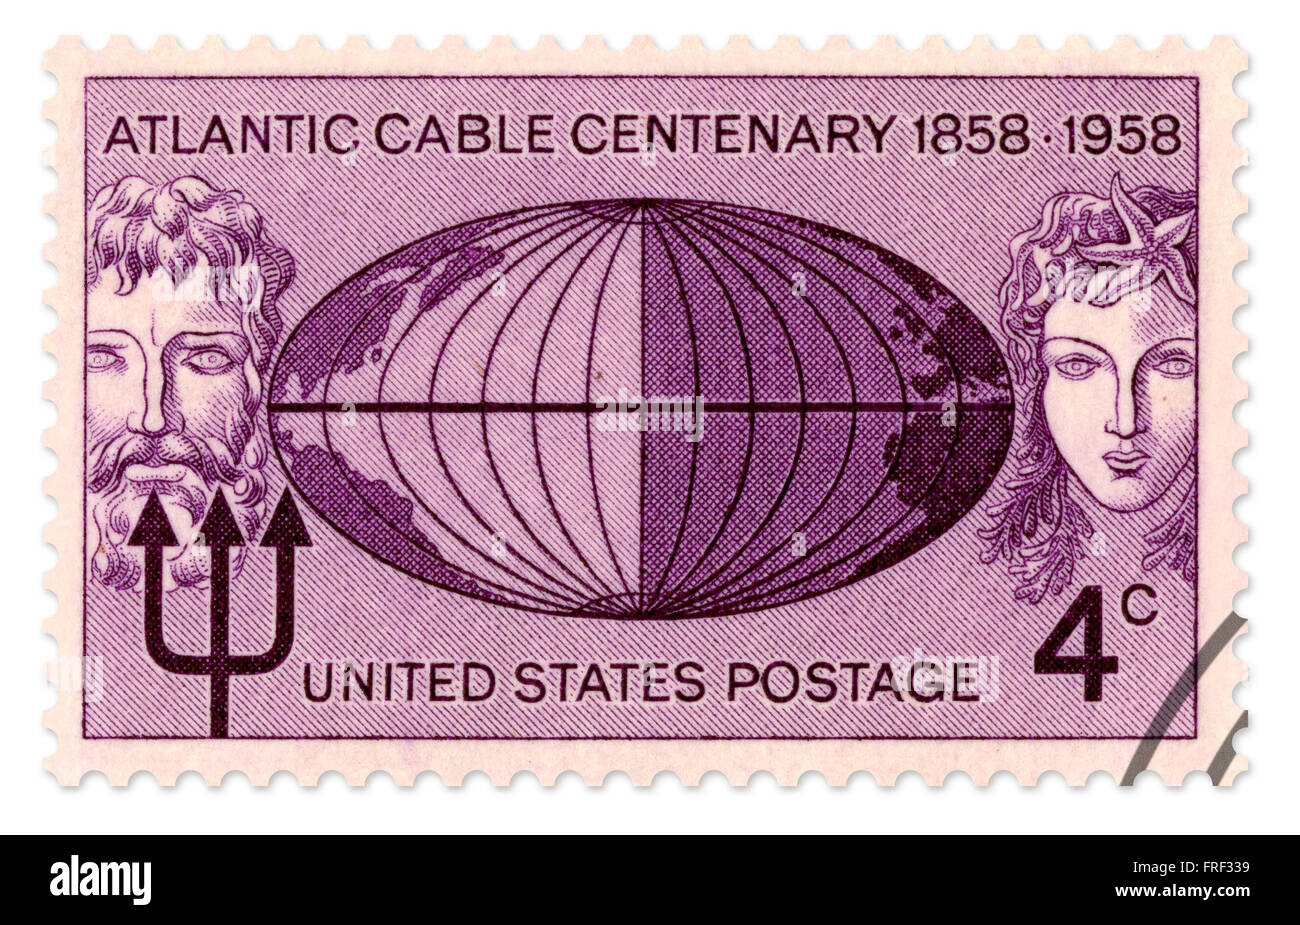 Commemorative United States stamp for the Atlantic Cable Centenary 1858-1958, issued in 1958 by the US Postal Service. - Stock Image